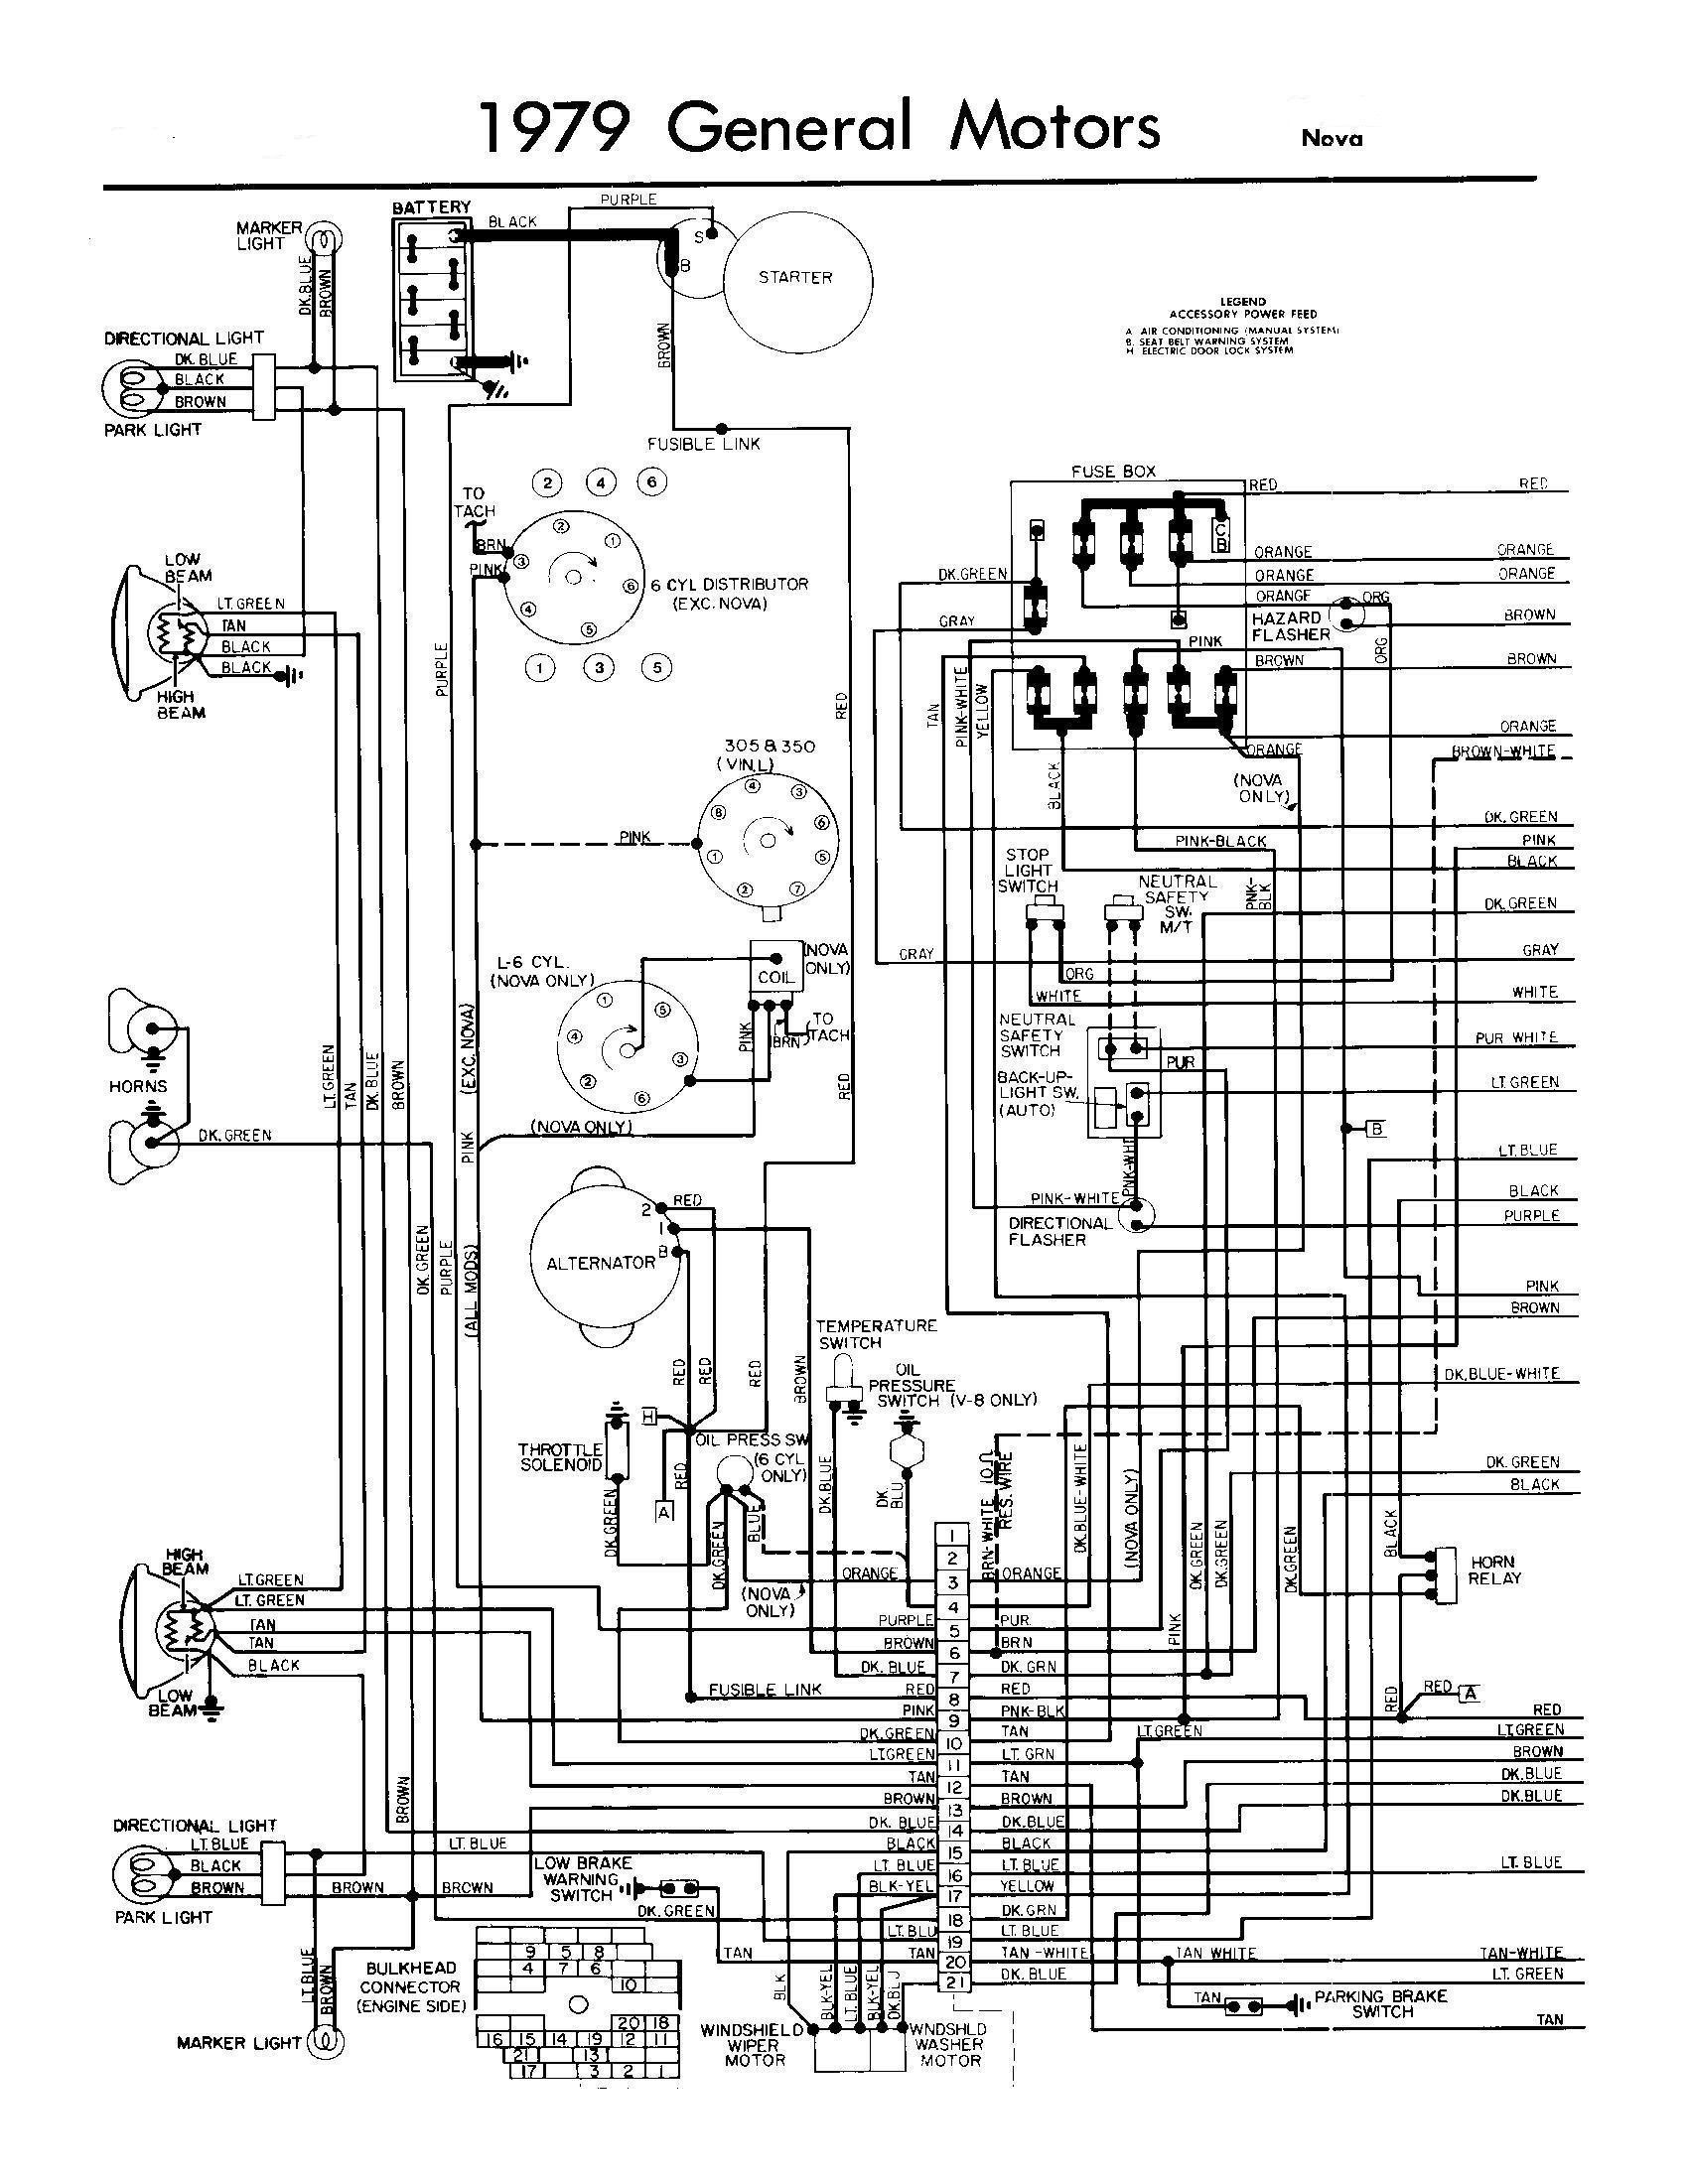 1988 chevy truck tail light wiring harness free download all 1969 Chevy Truck Wiring Diagram